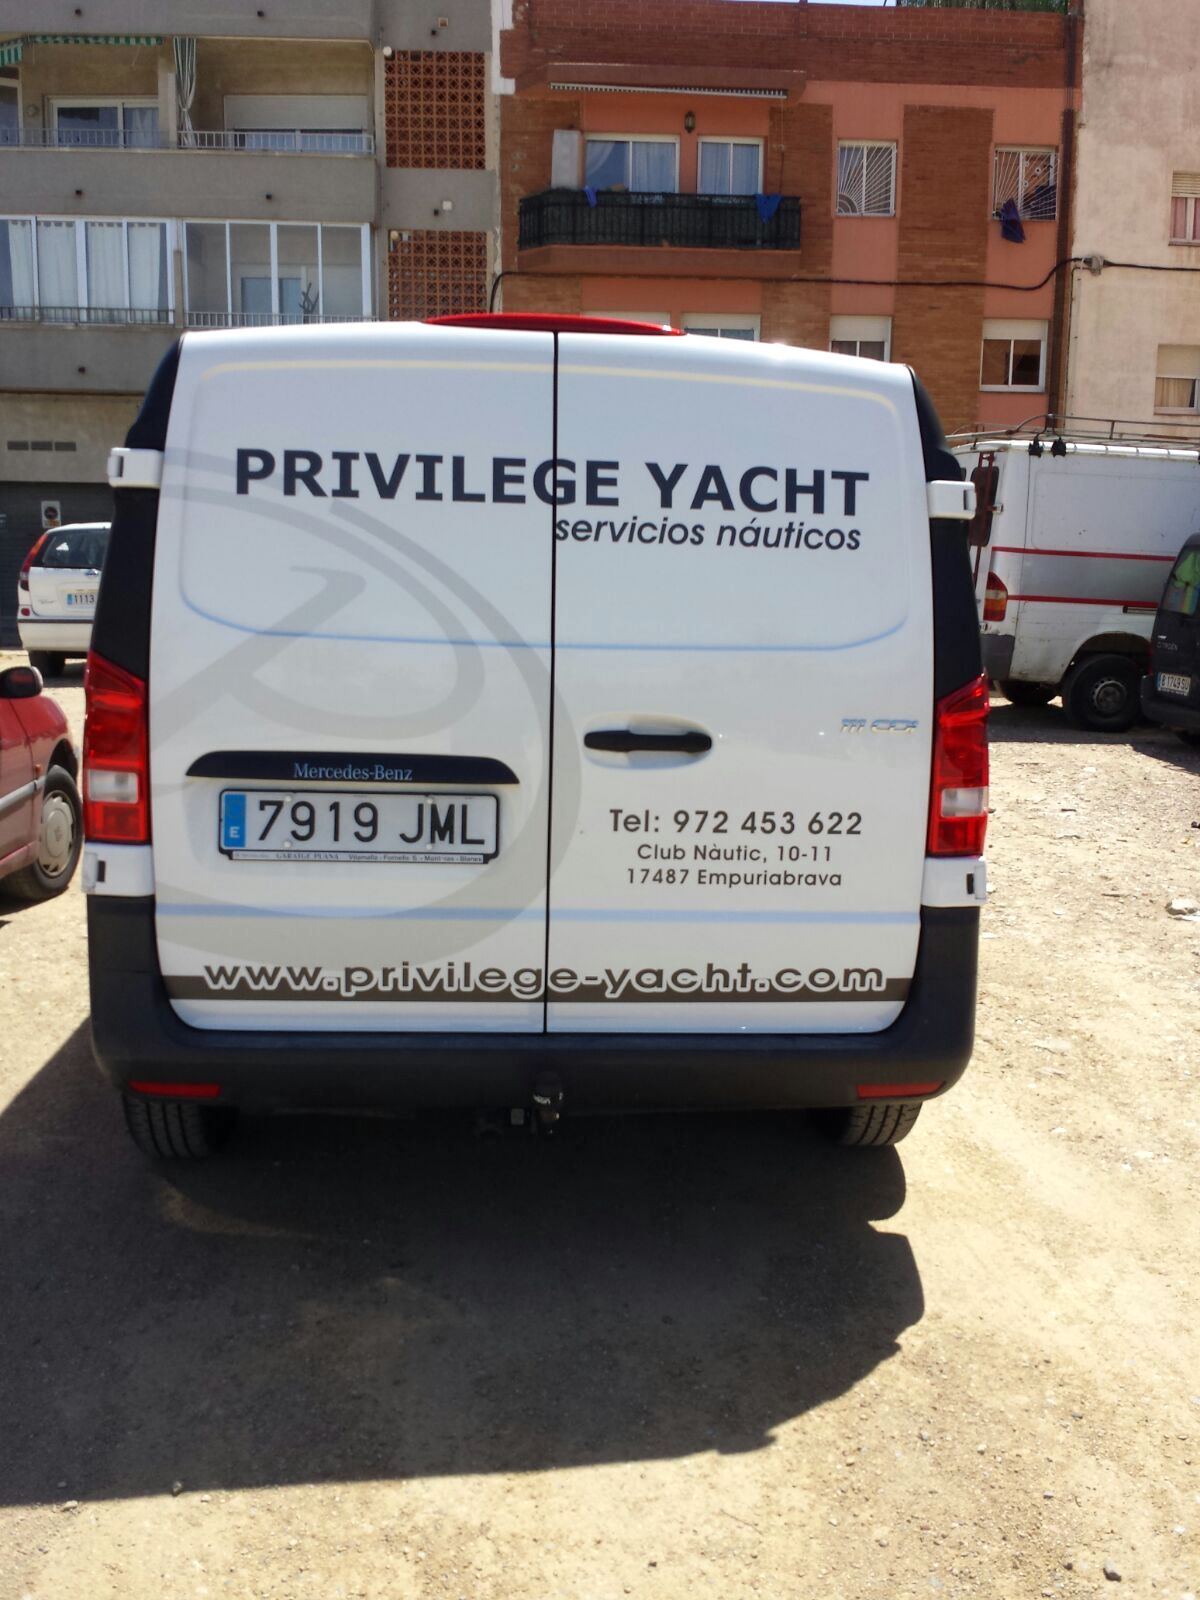 PRIVILEGEYACHT2 - Vehícles